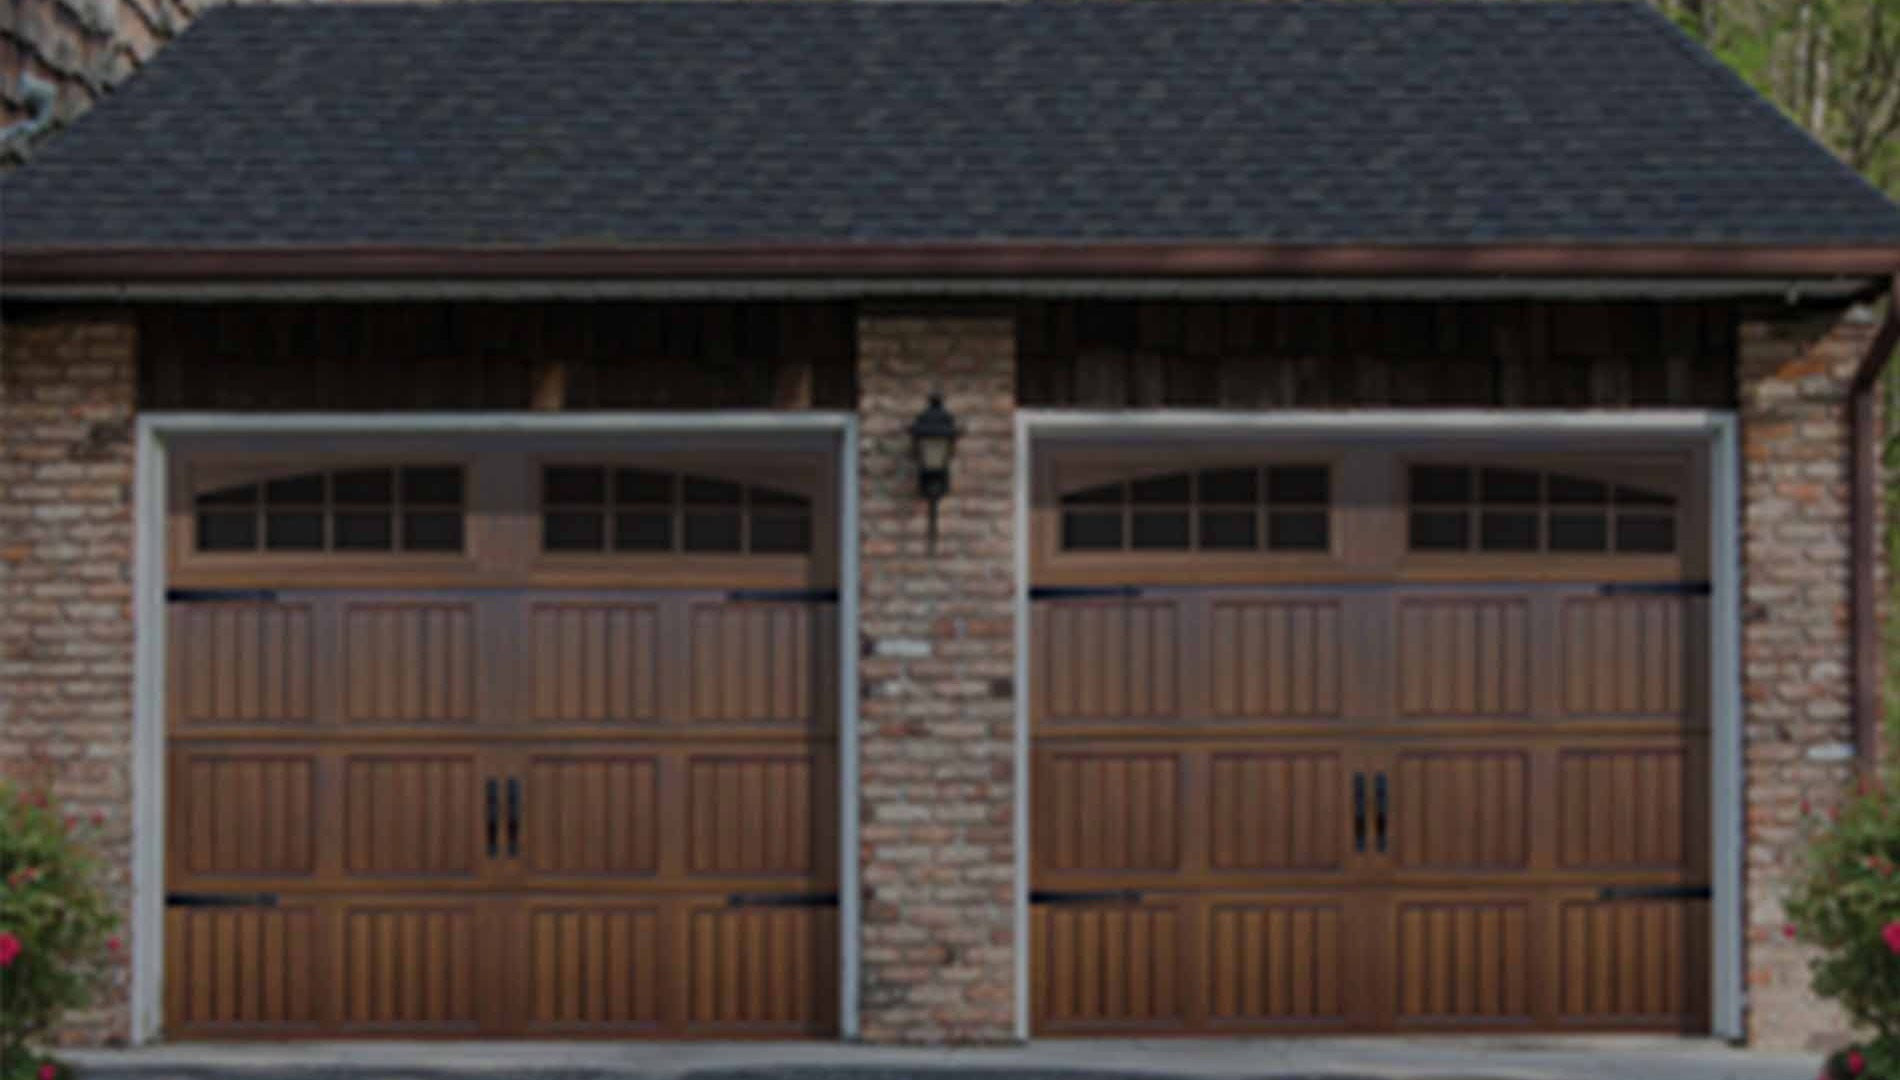 Residential Garage Door u0026 Gate Service - Plano TX - Plano Garage Door u0026 Opener Since 1977 & Residential Garage Door u0026 Gate Service - Plano TX - Plano Garage ...